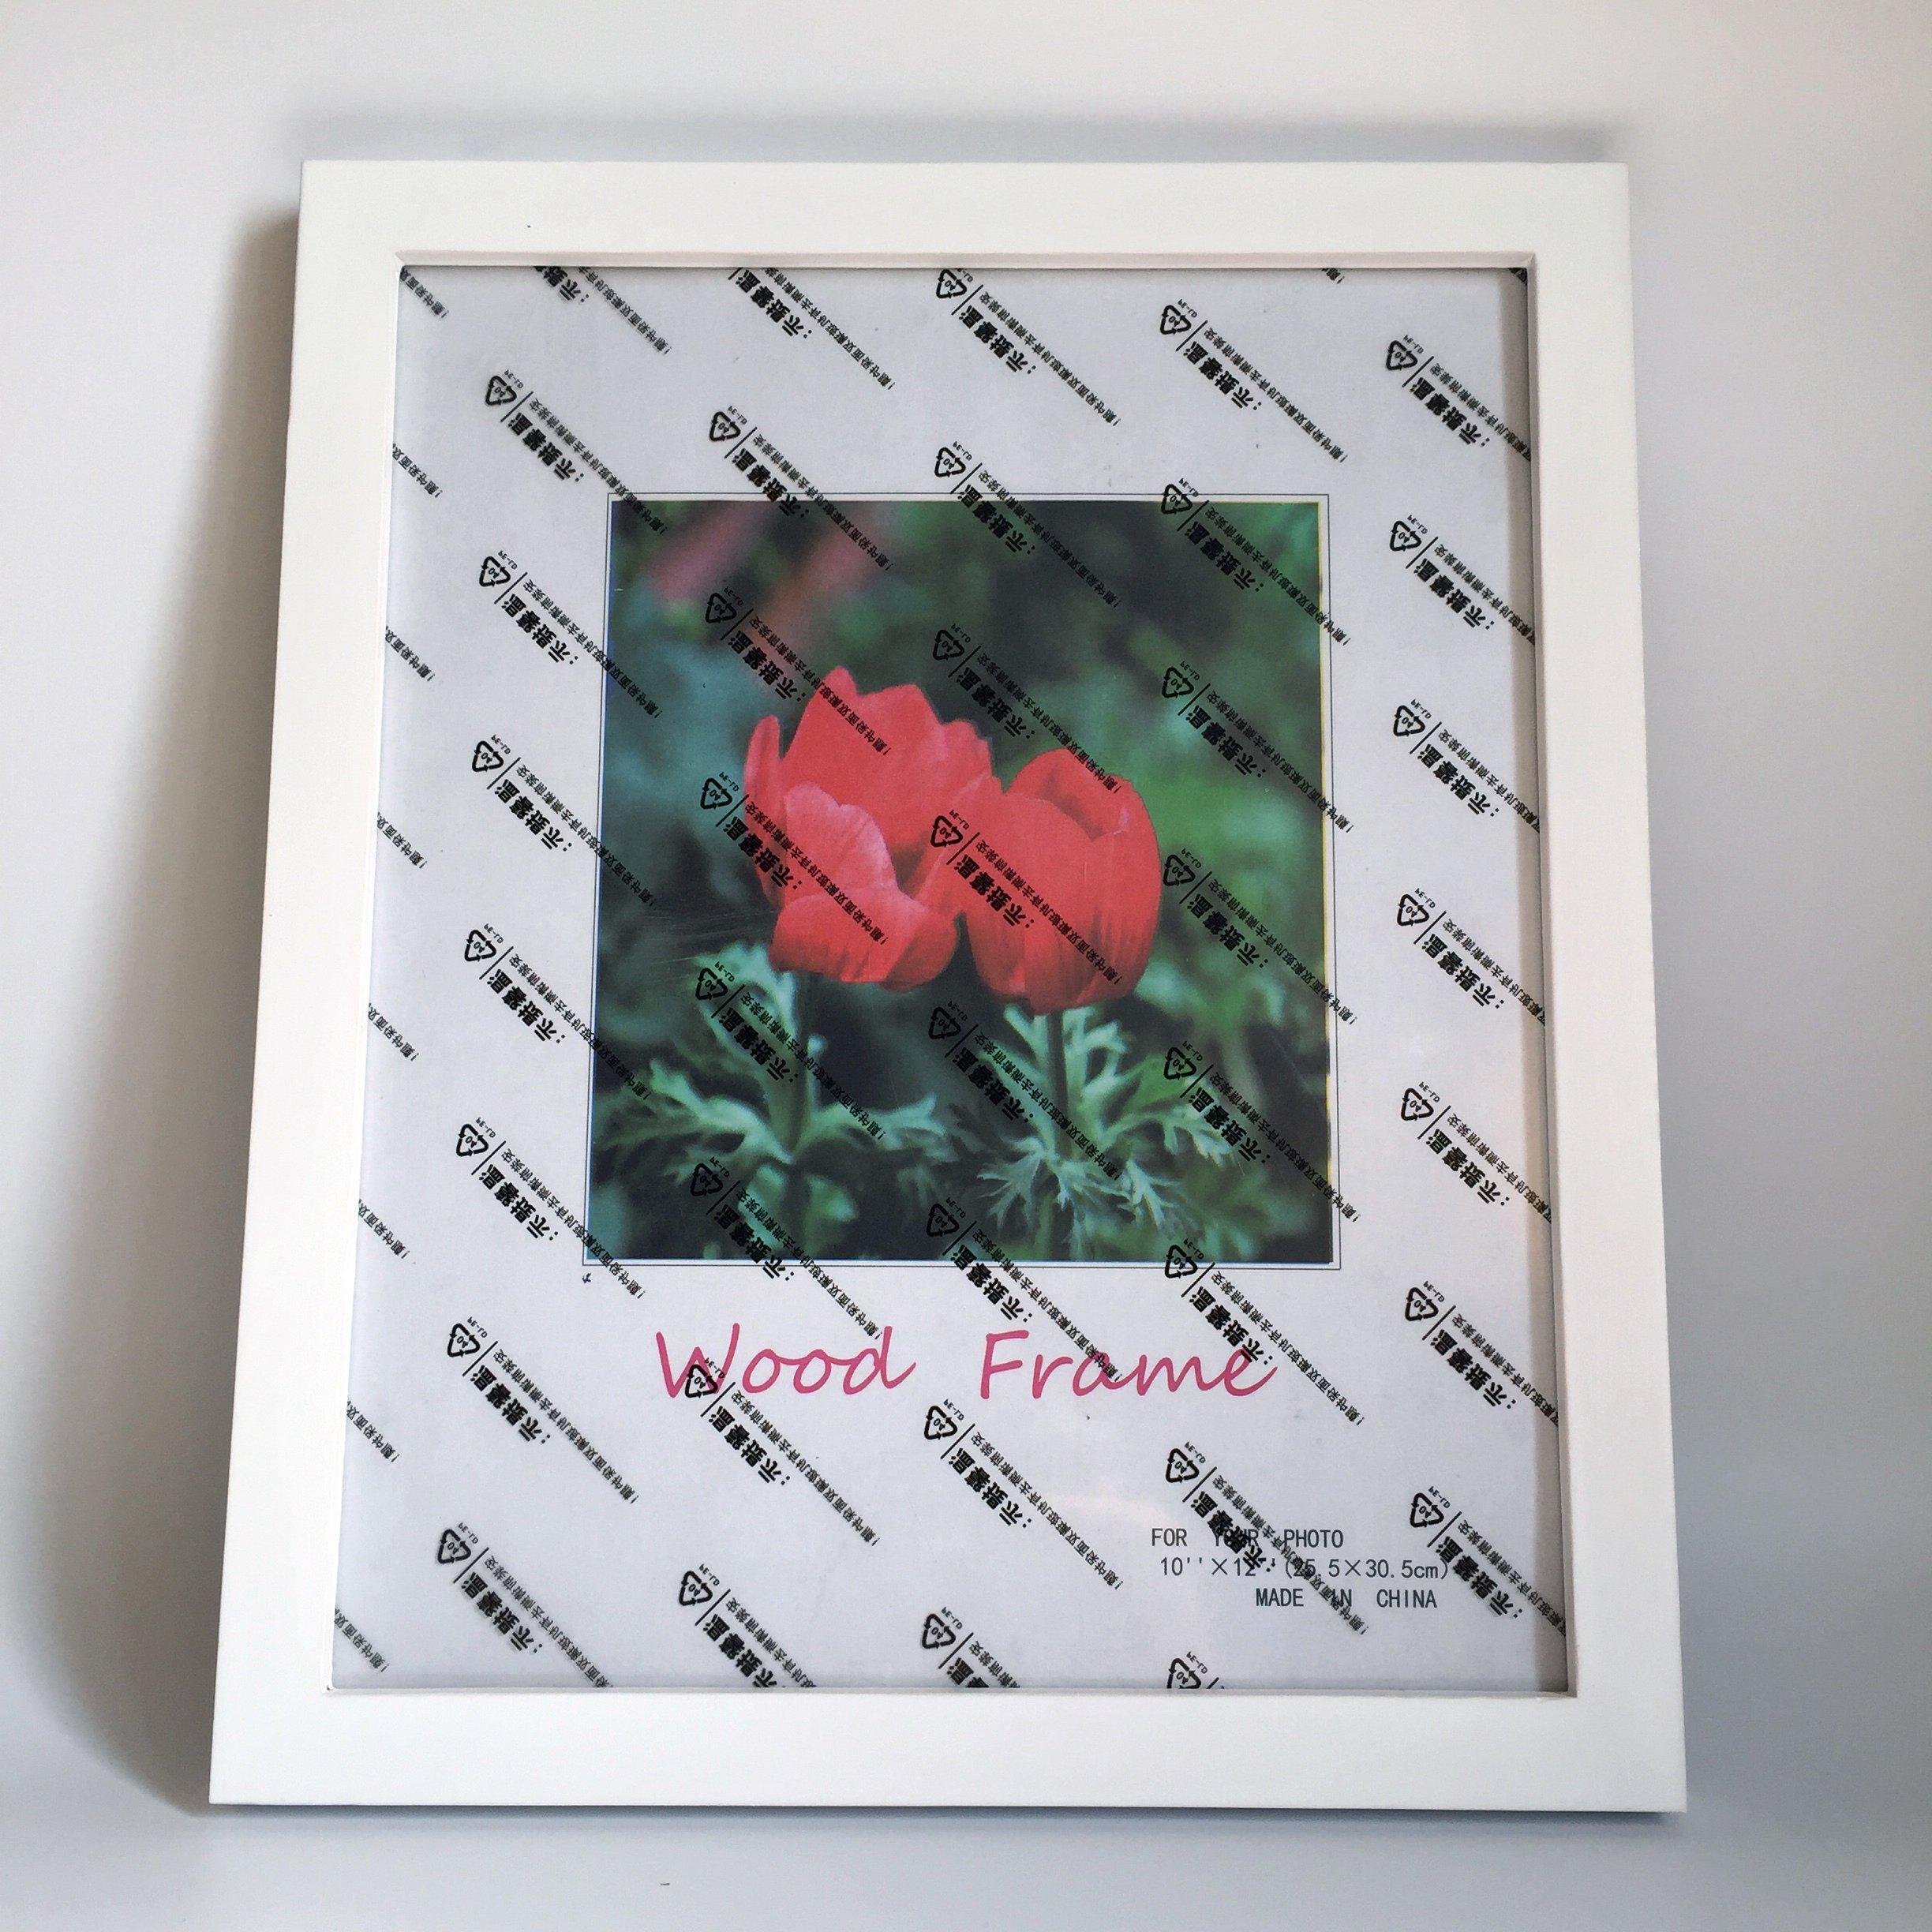 Cheap material pictures find material pictures deals on line at get quotations 11x13 white picture frame made to display pictures 95x115 without mat wall mounting jeuxipadfo Image collections